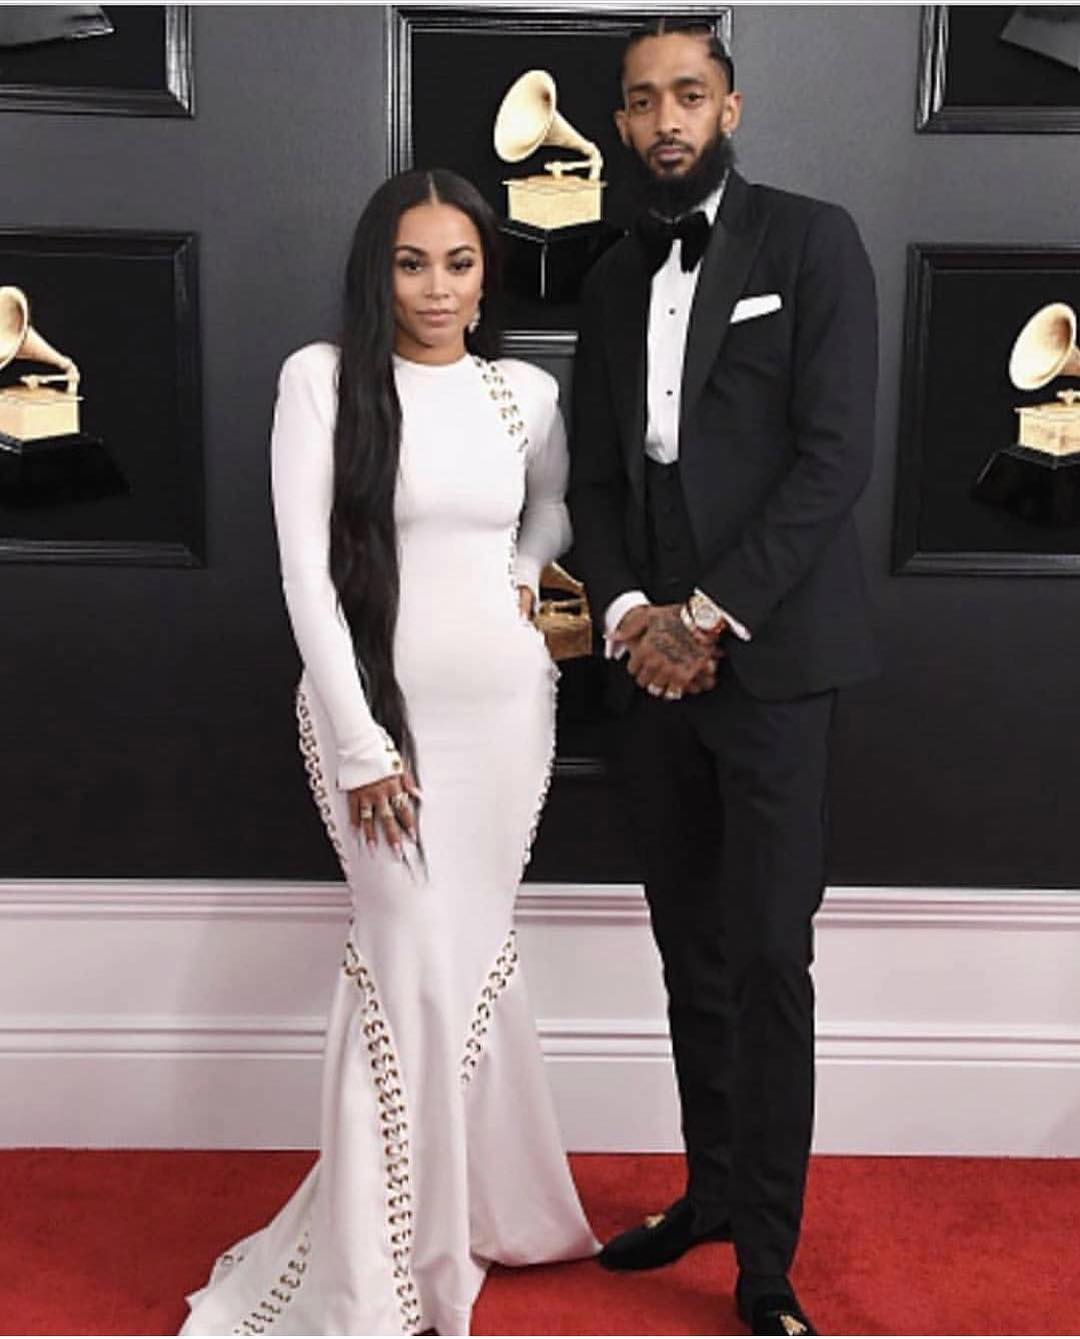 50999850 2140785066002943 426552802251316826 n - Remembering Nipsey Hussle, the Eritrean-American rapper who died today morning